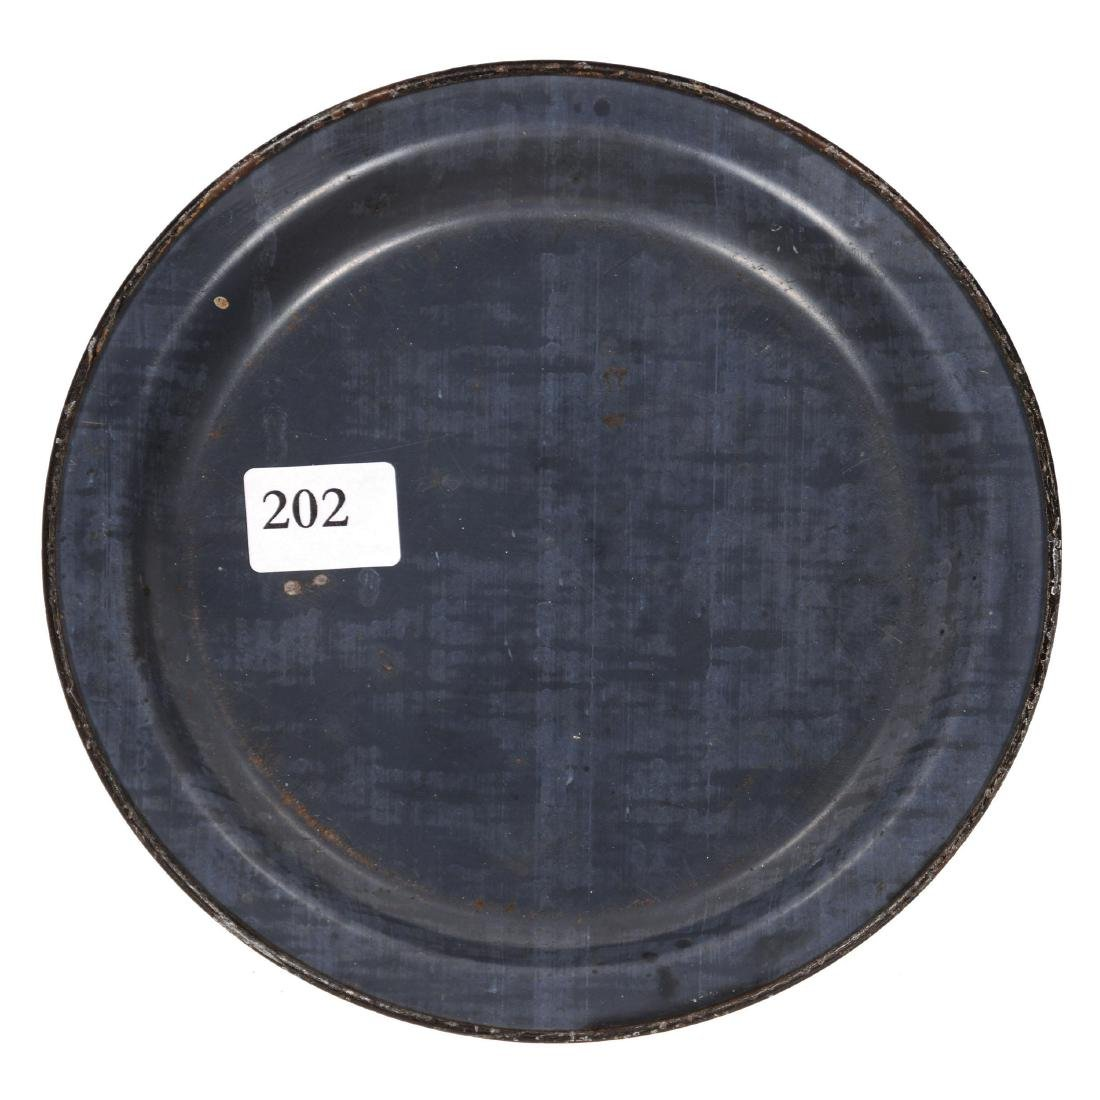 Original Round Advertising Tip Tray - 2